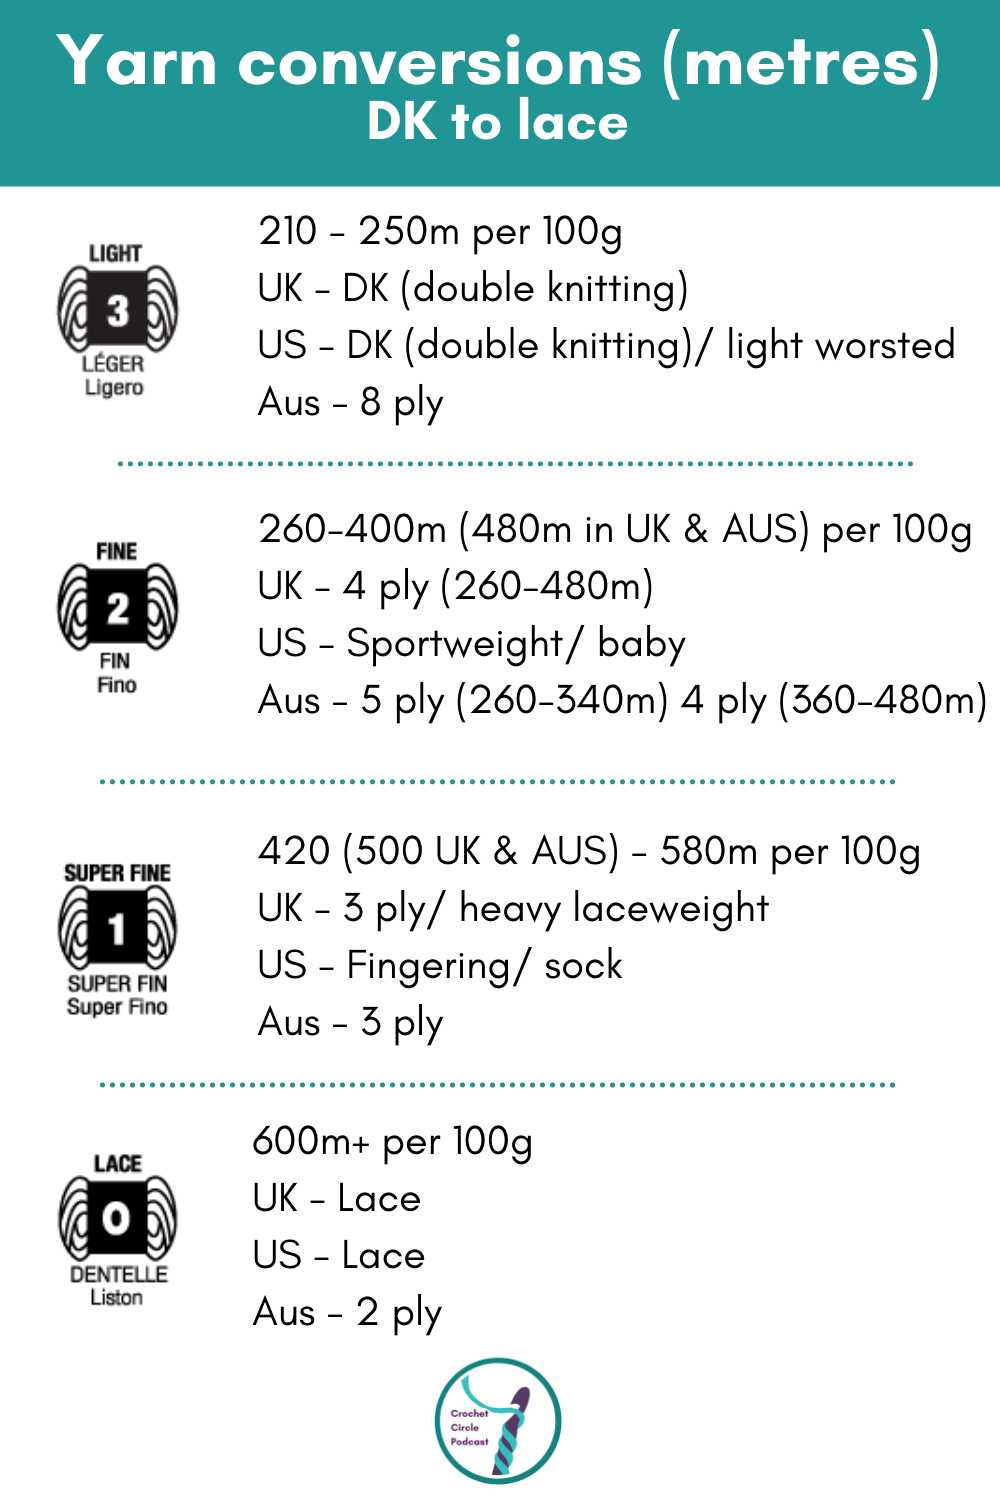 Yarn weight 3 - 0 with US, UK and Aus terminology